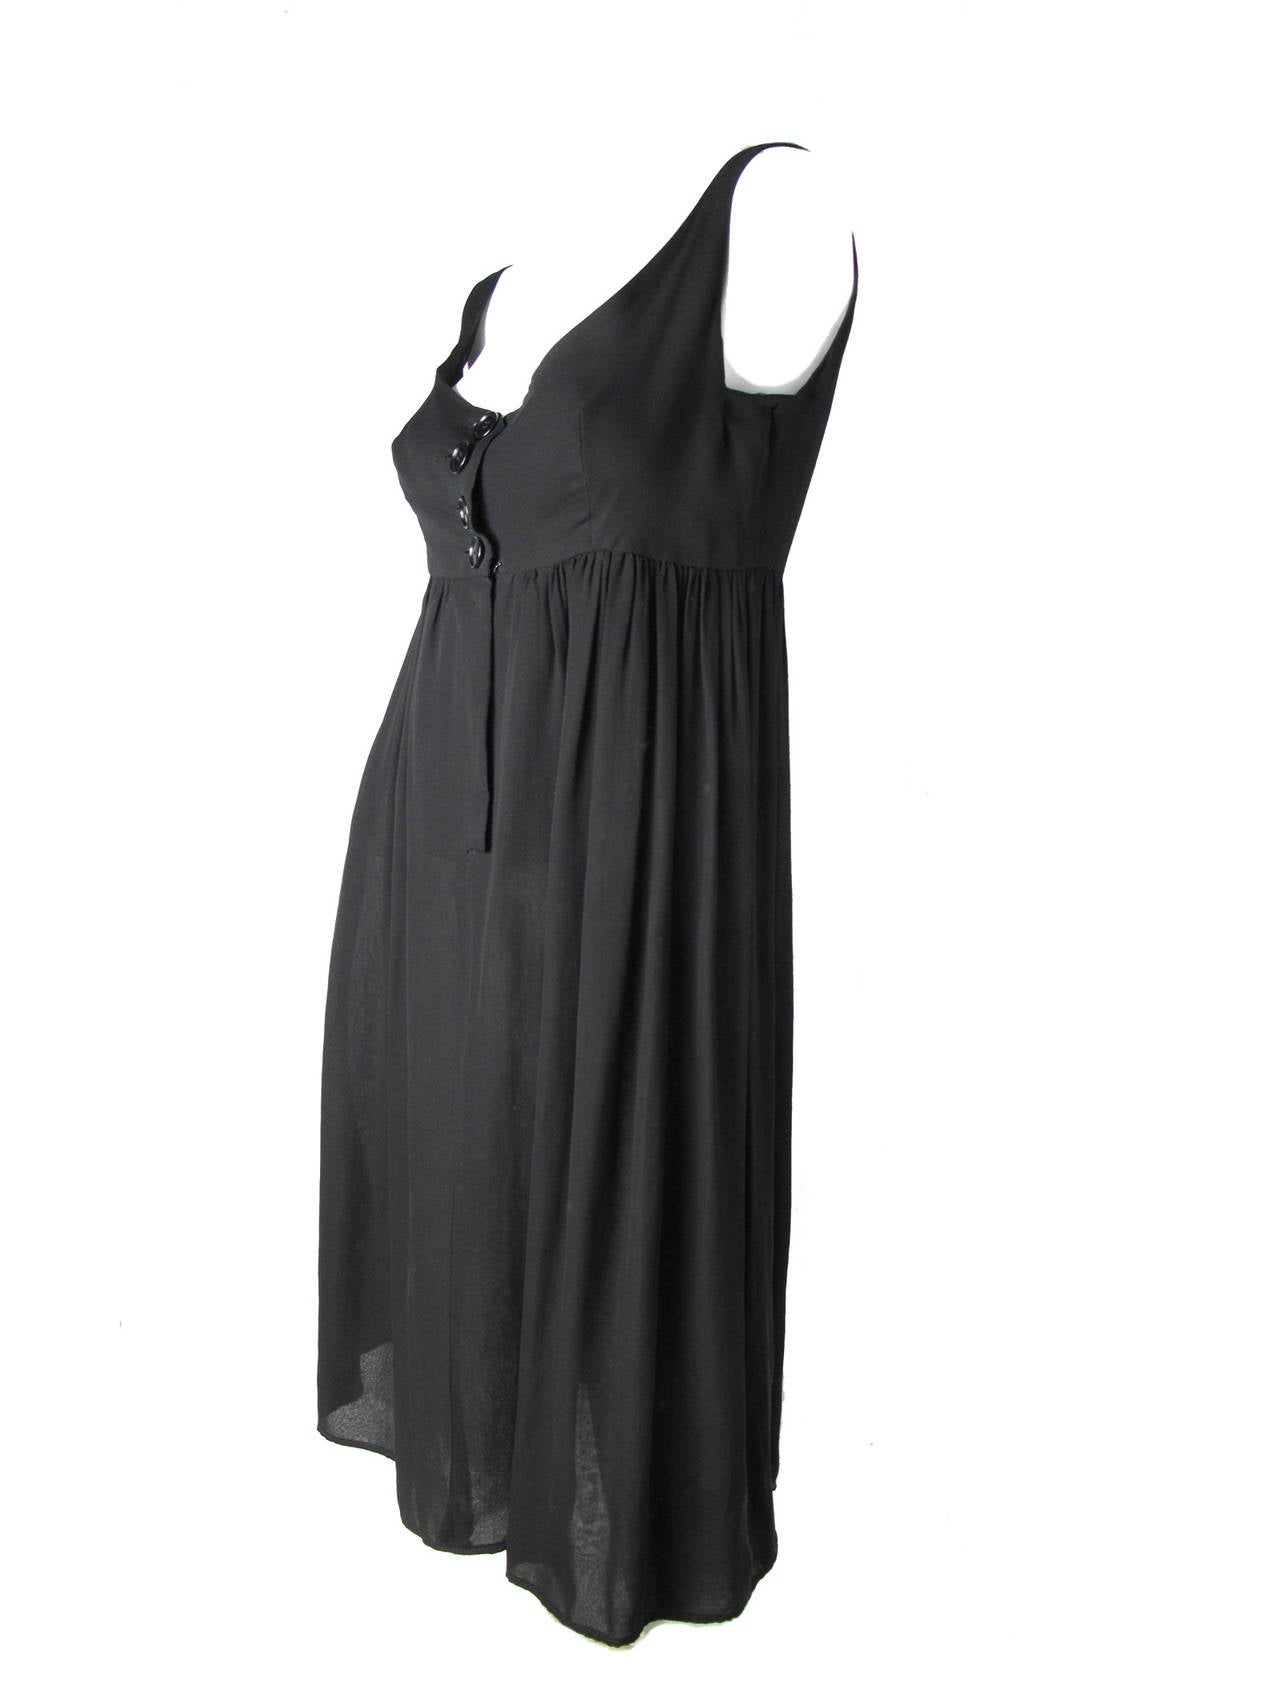 "1960s Rudi Gegnerisch black silk chiffon dress. Two layers of sheer chiffon, sewn together at hem.   34"" bust, 29"" waist, 60"" hips, 37 1/2"" length.  Condition: Fair, tear in armhole has been re-stitched.  small holes on back of"